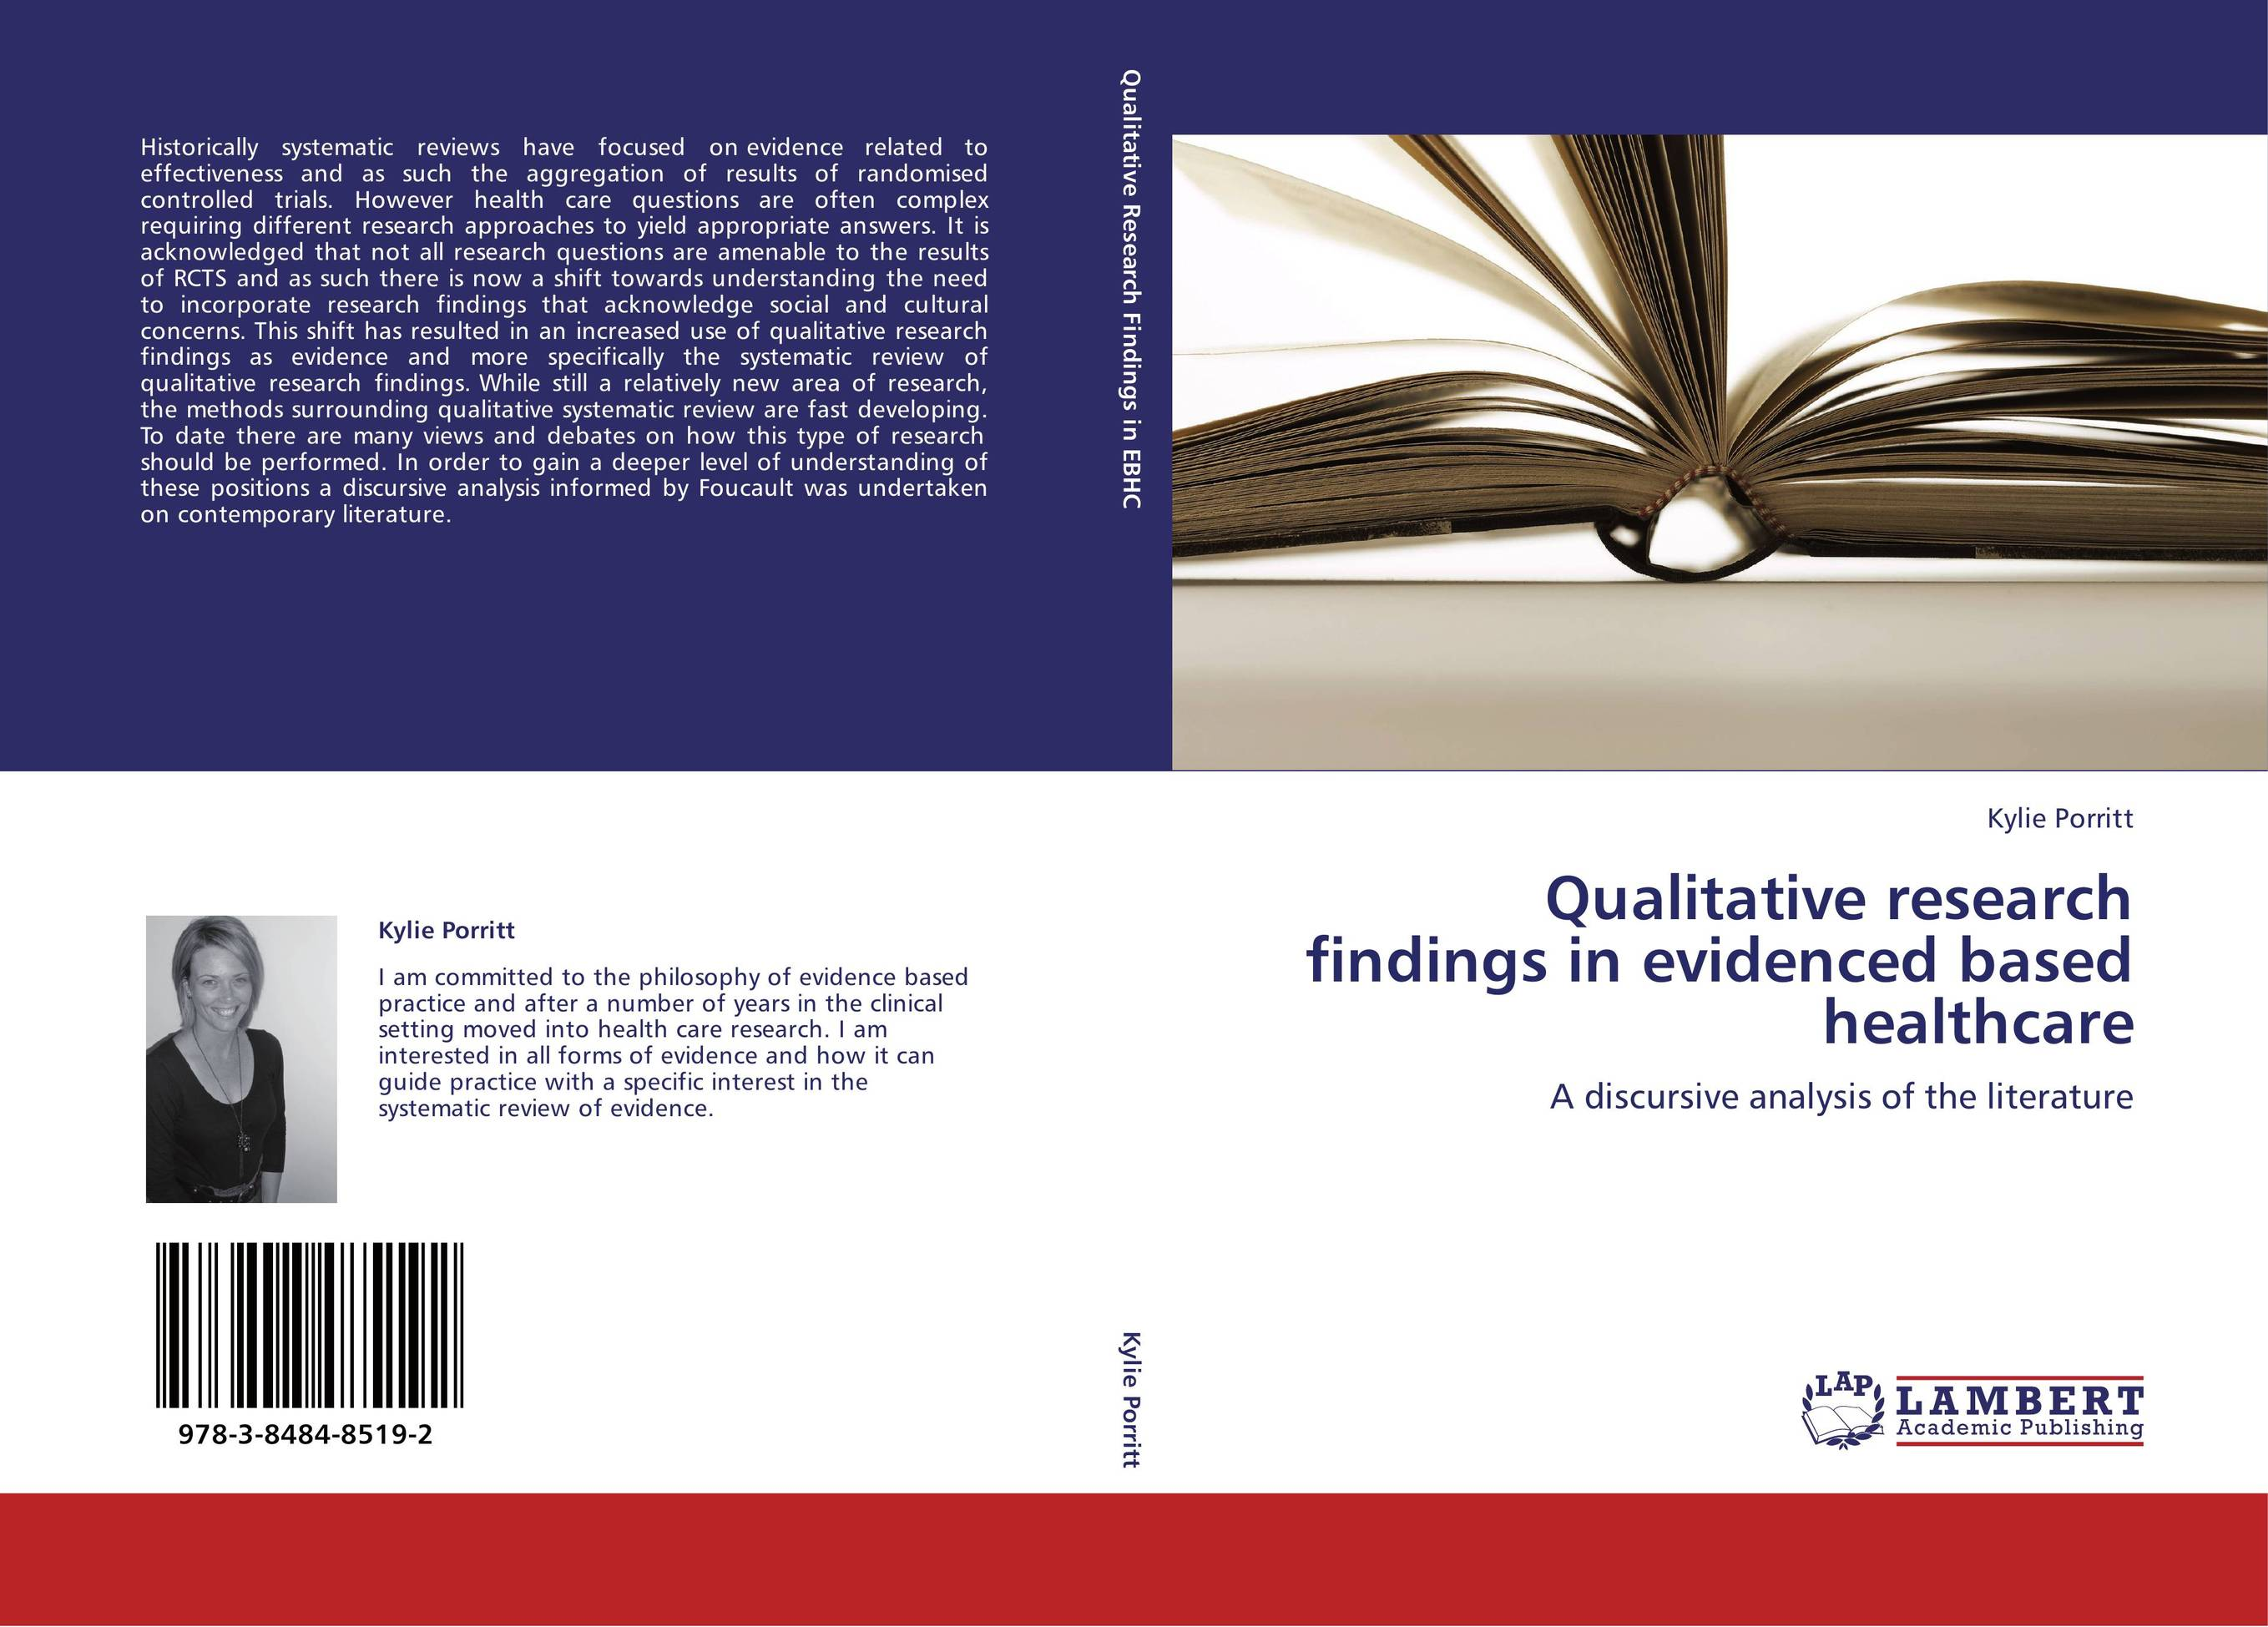 a review of the research literature on evidence-based healthcare design To undertake a literature review at some point, either as part of a course of study, as a key step in the research process, or as part of clinical practice development or policy.